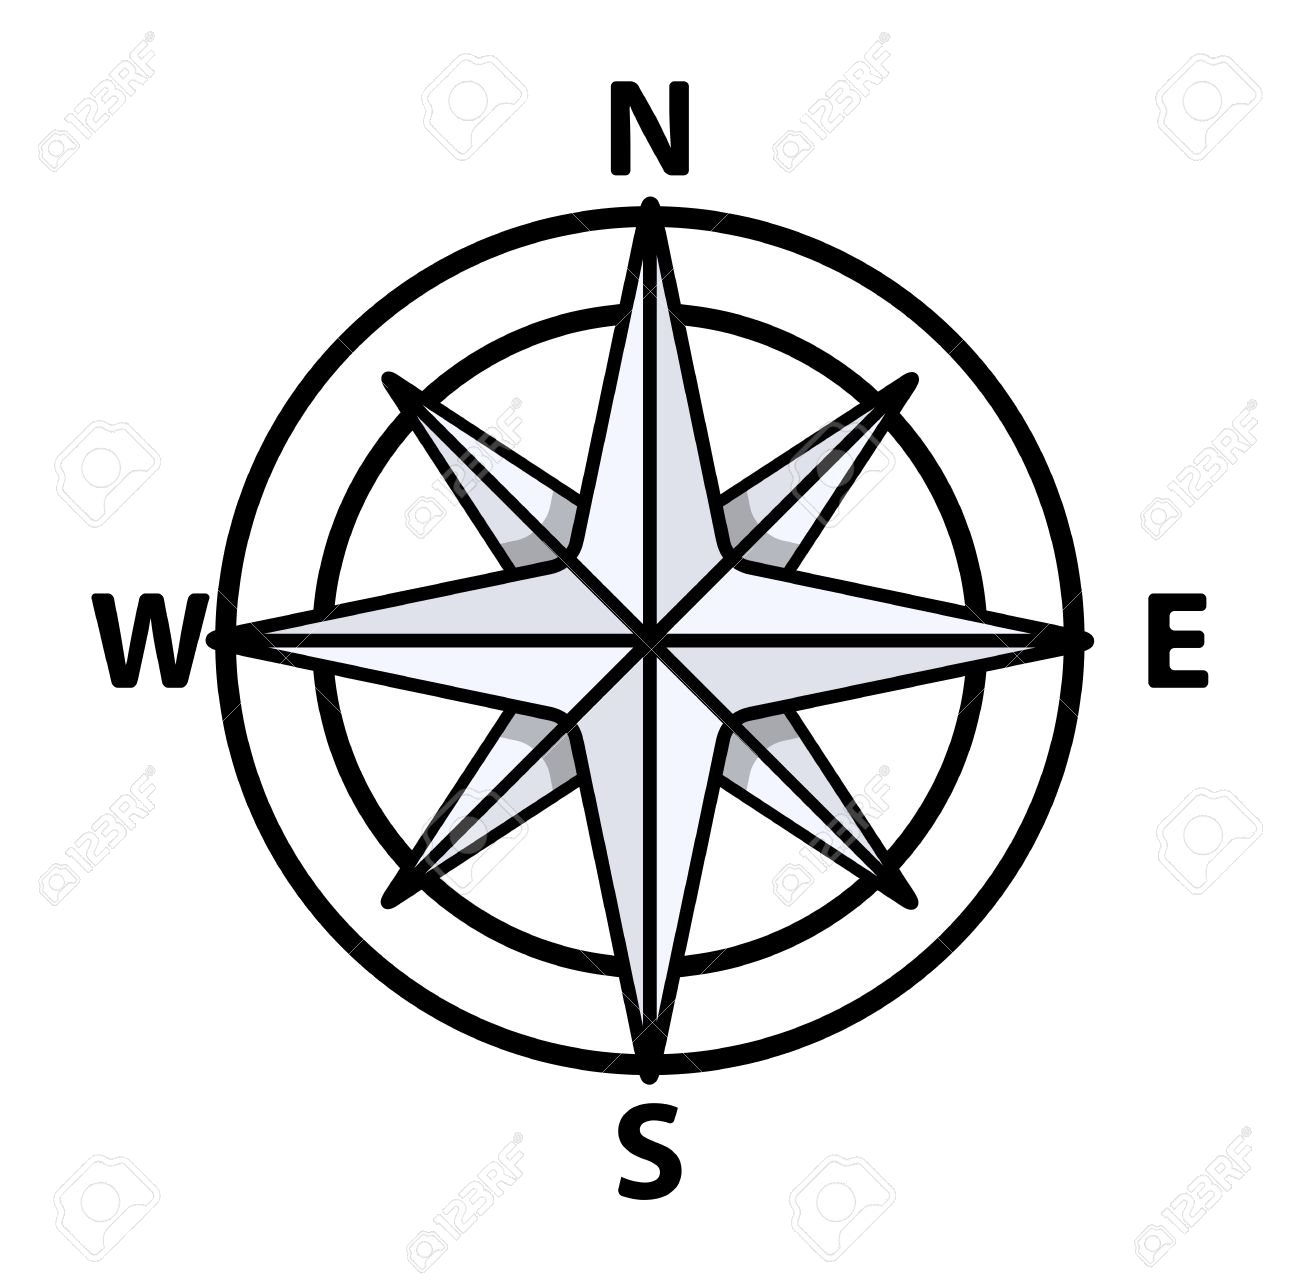 Compass clipart black and white clipart transparent stock Compass Clipart Black And White Free Best Transparent Png - AZPng clipart transparent stock